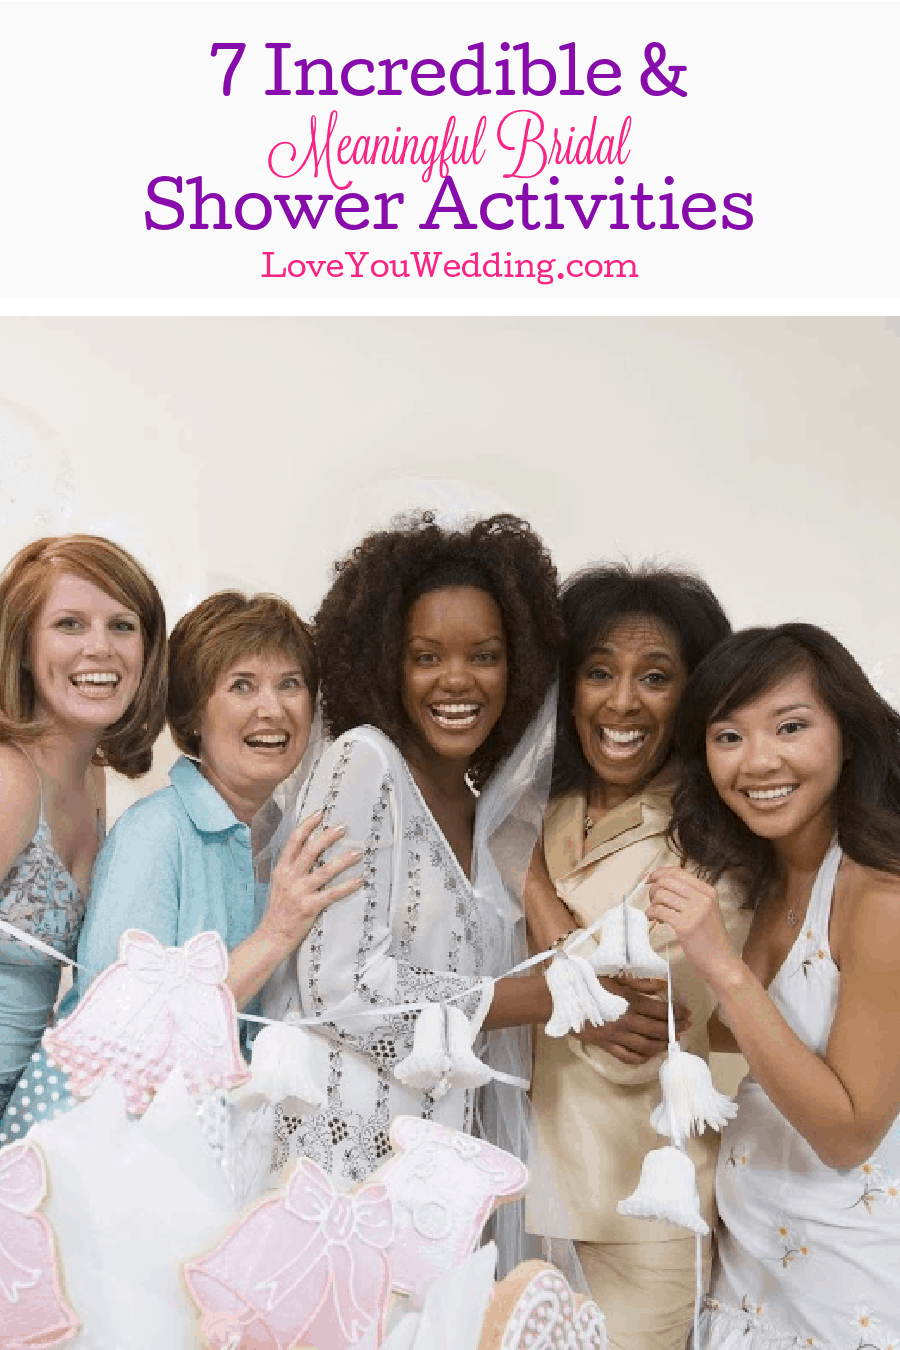 Planning for some meaningful bridal shower activities? We bring you extraordinary ideas to help you create memories to keep forever!